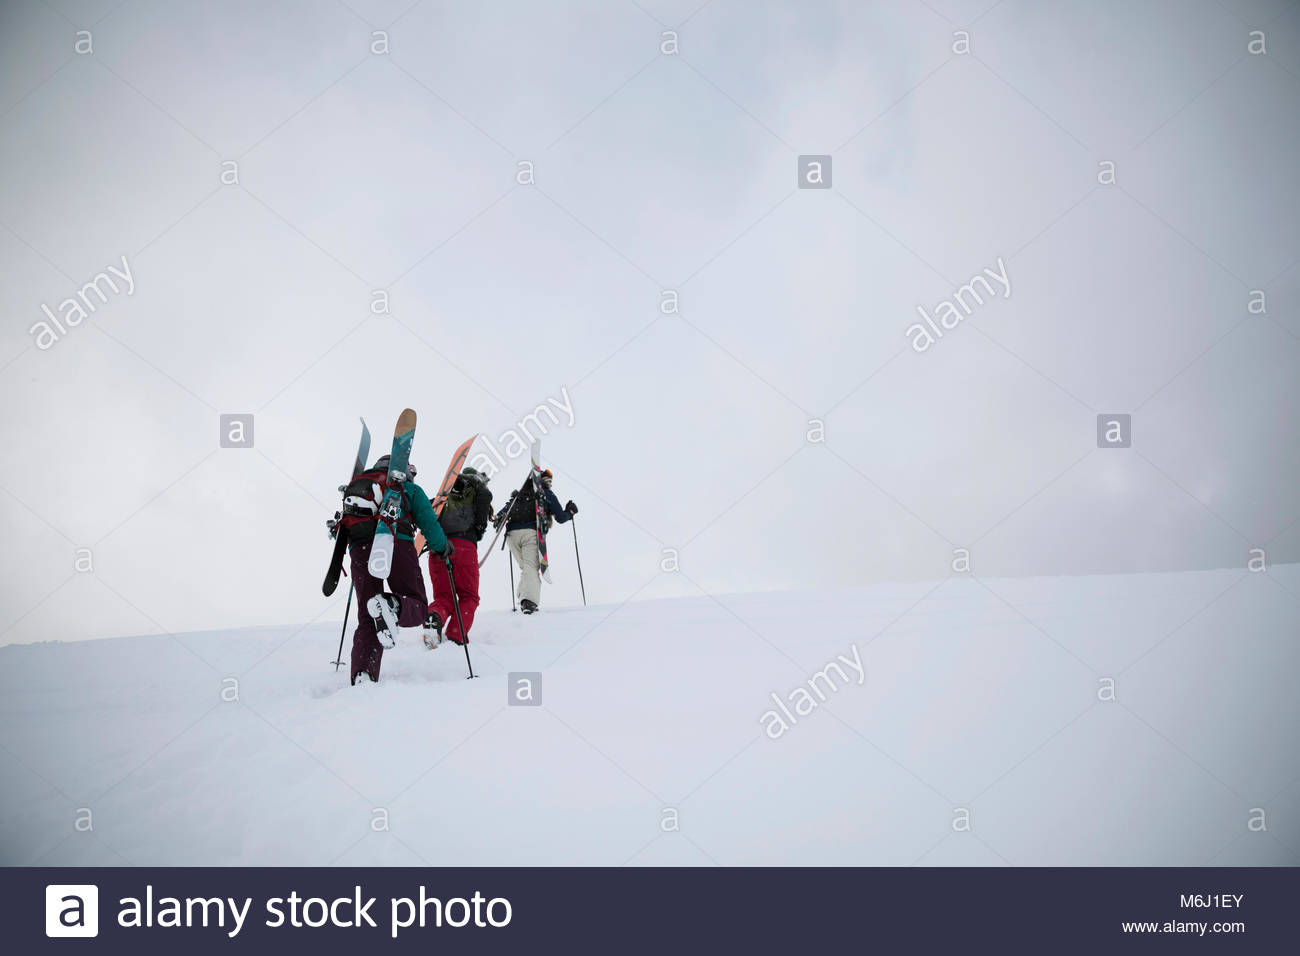 Female skier and snowboarder friends hiking up snow covered hill - Stock Image